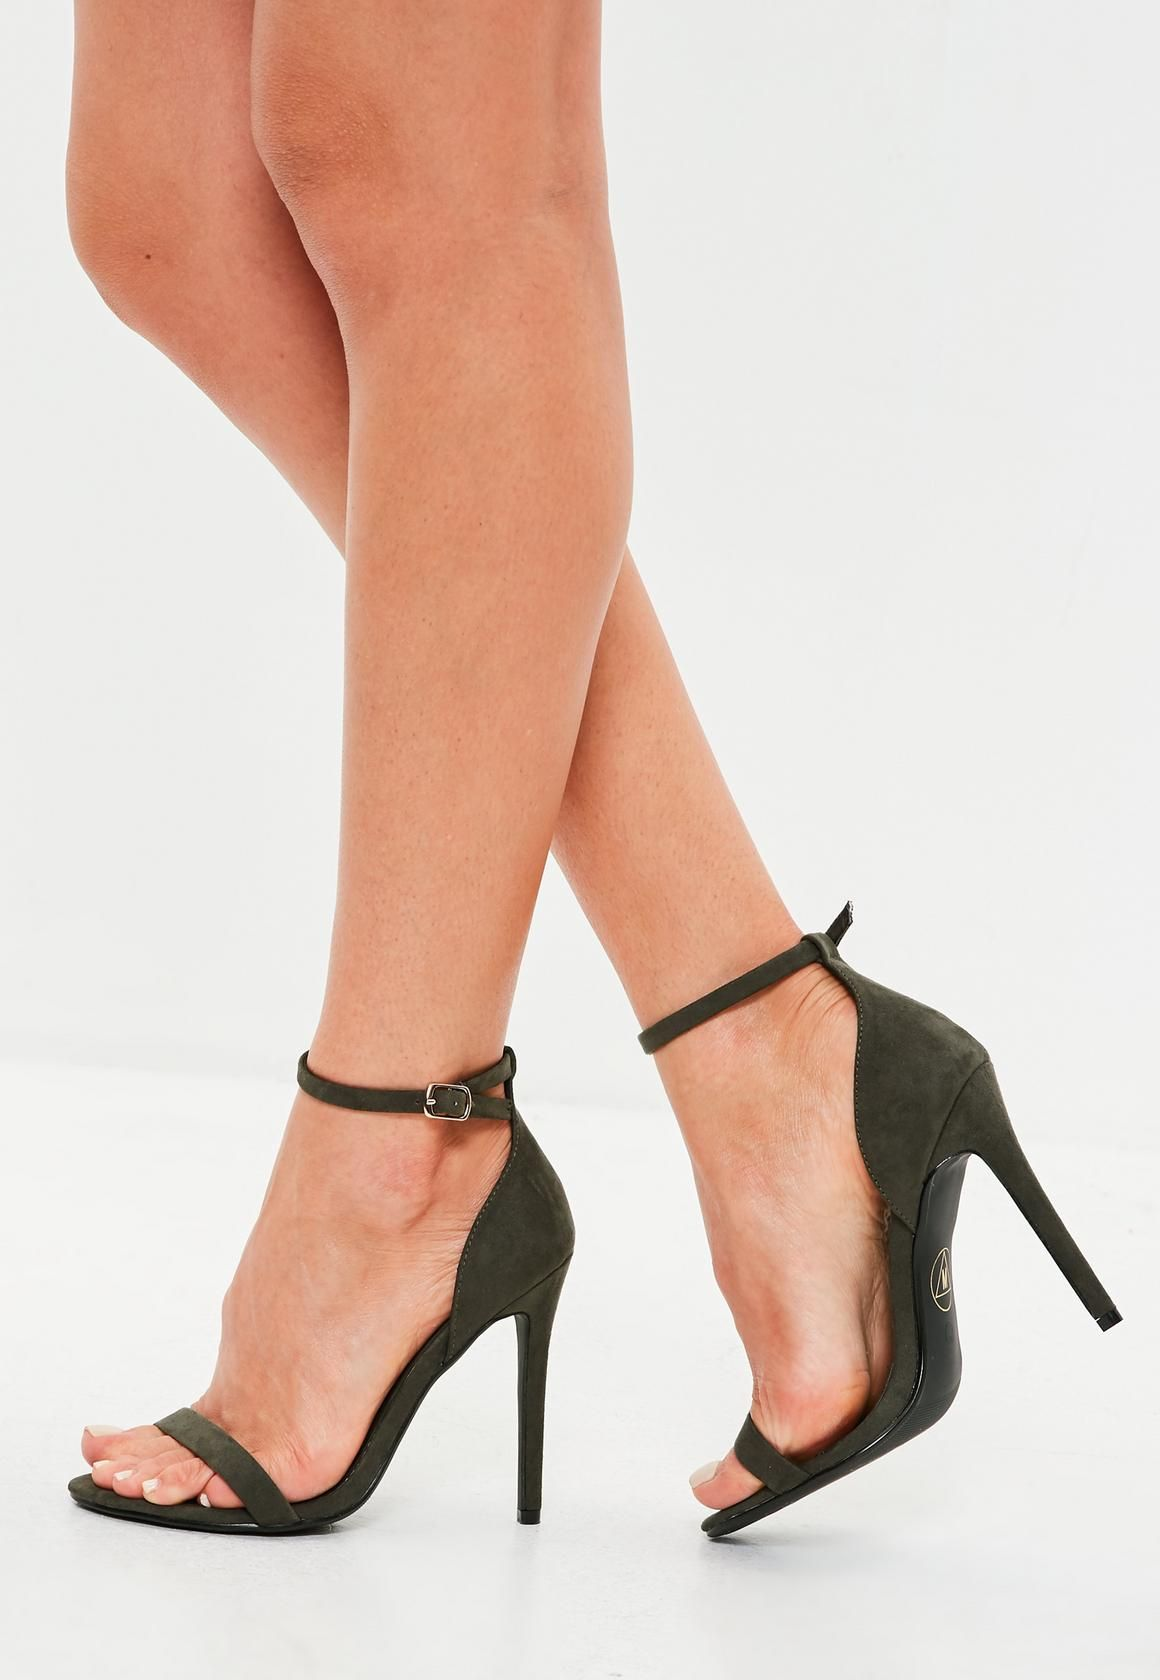 56f5c09ce9d ... shoes from Missguided. These barely there heels feature a khaki hue